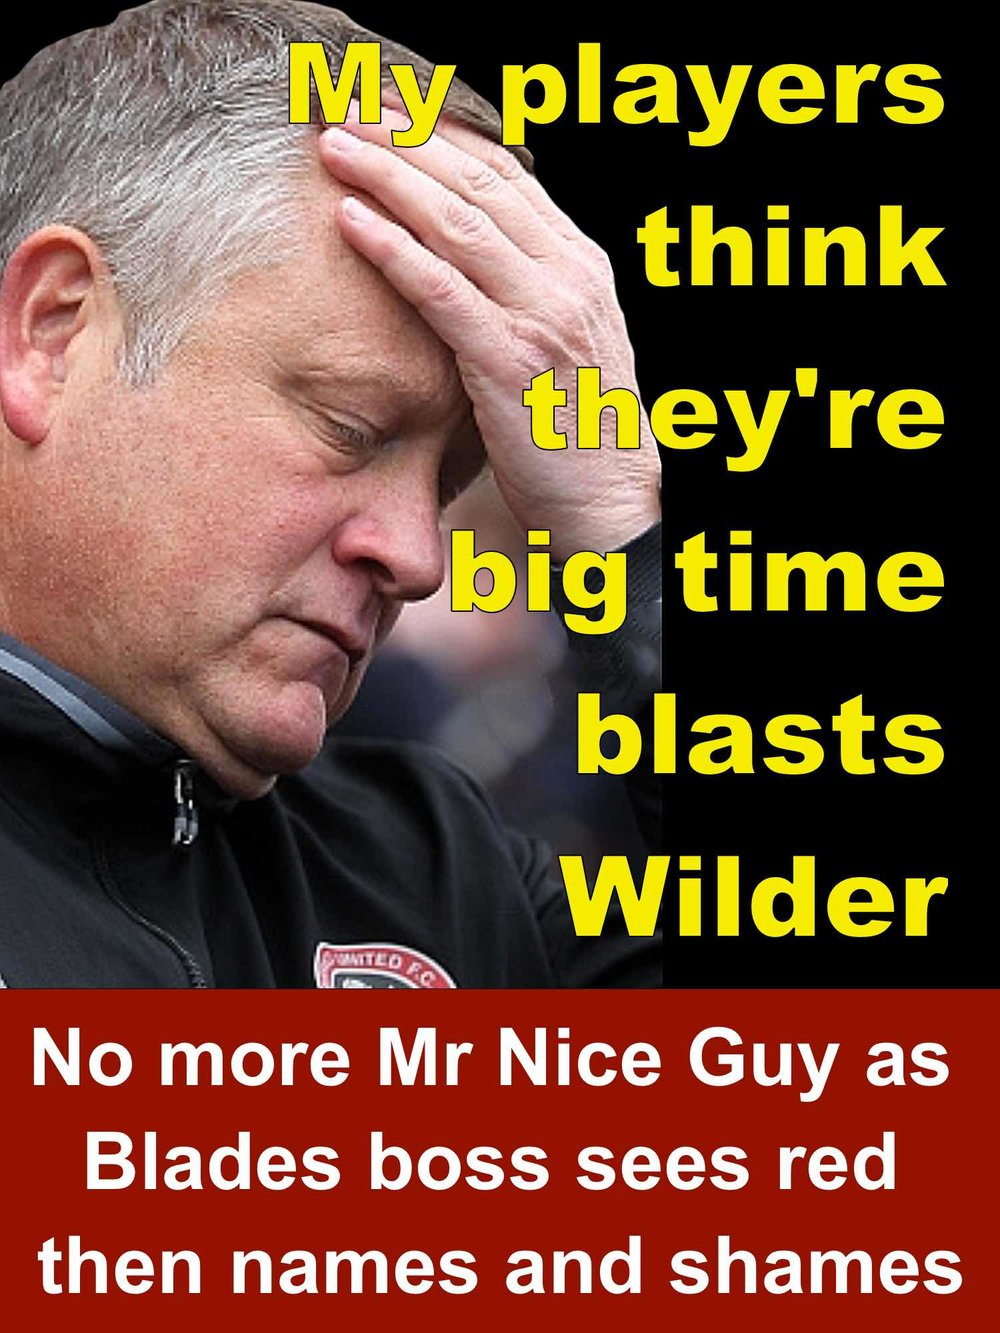 No more Mr Nice Guy as Sheffield United boss Chris Wilder sees red